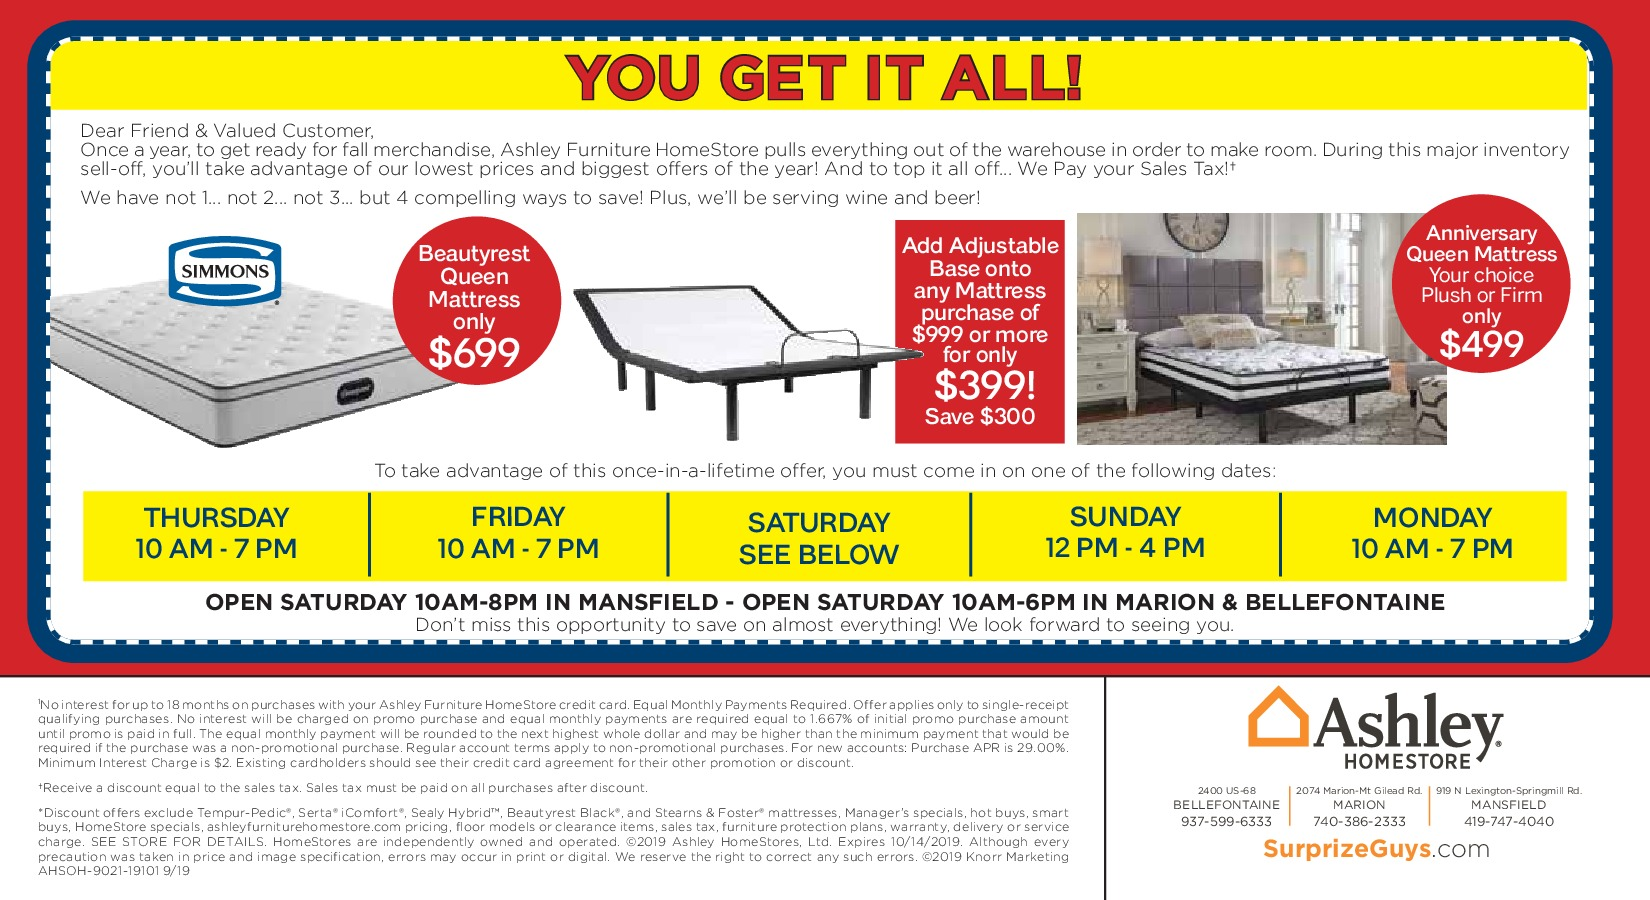 AHSOH-9021-19101-YouGetItAll-Specials Page